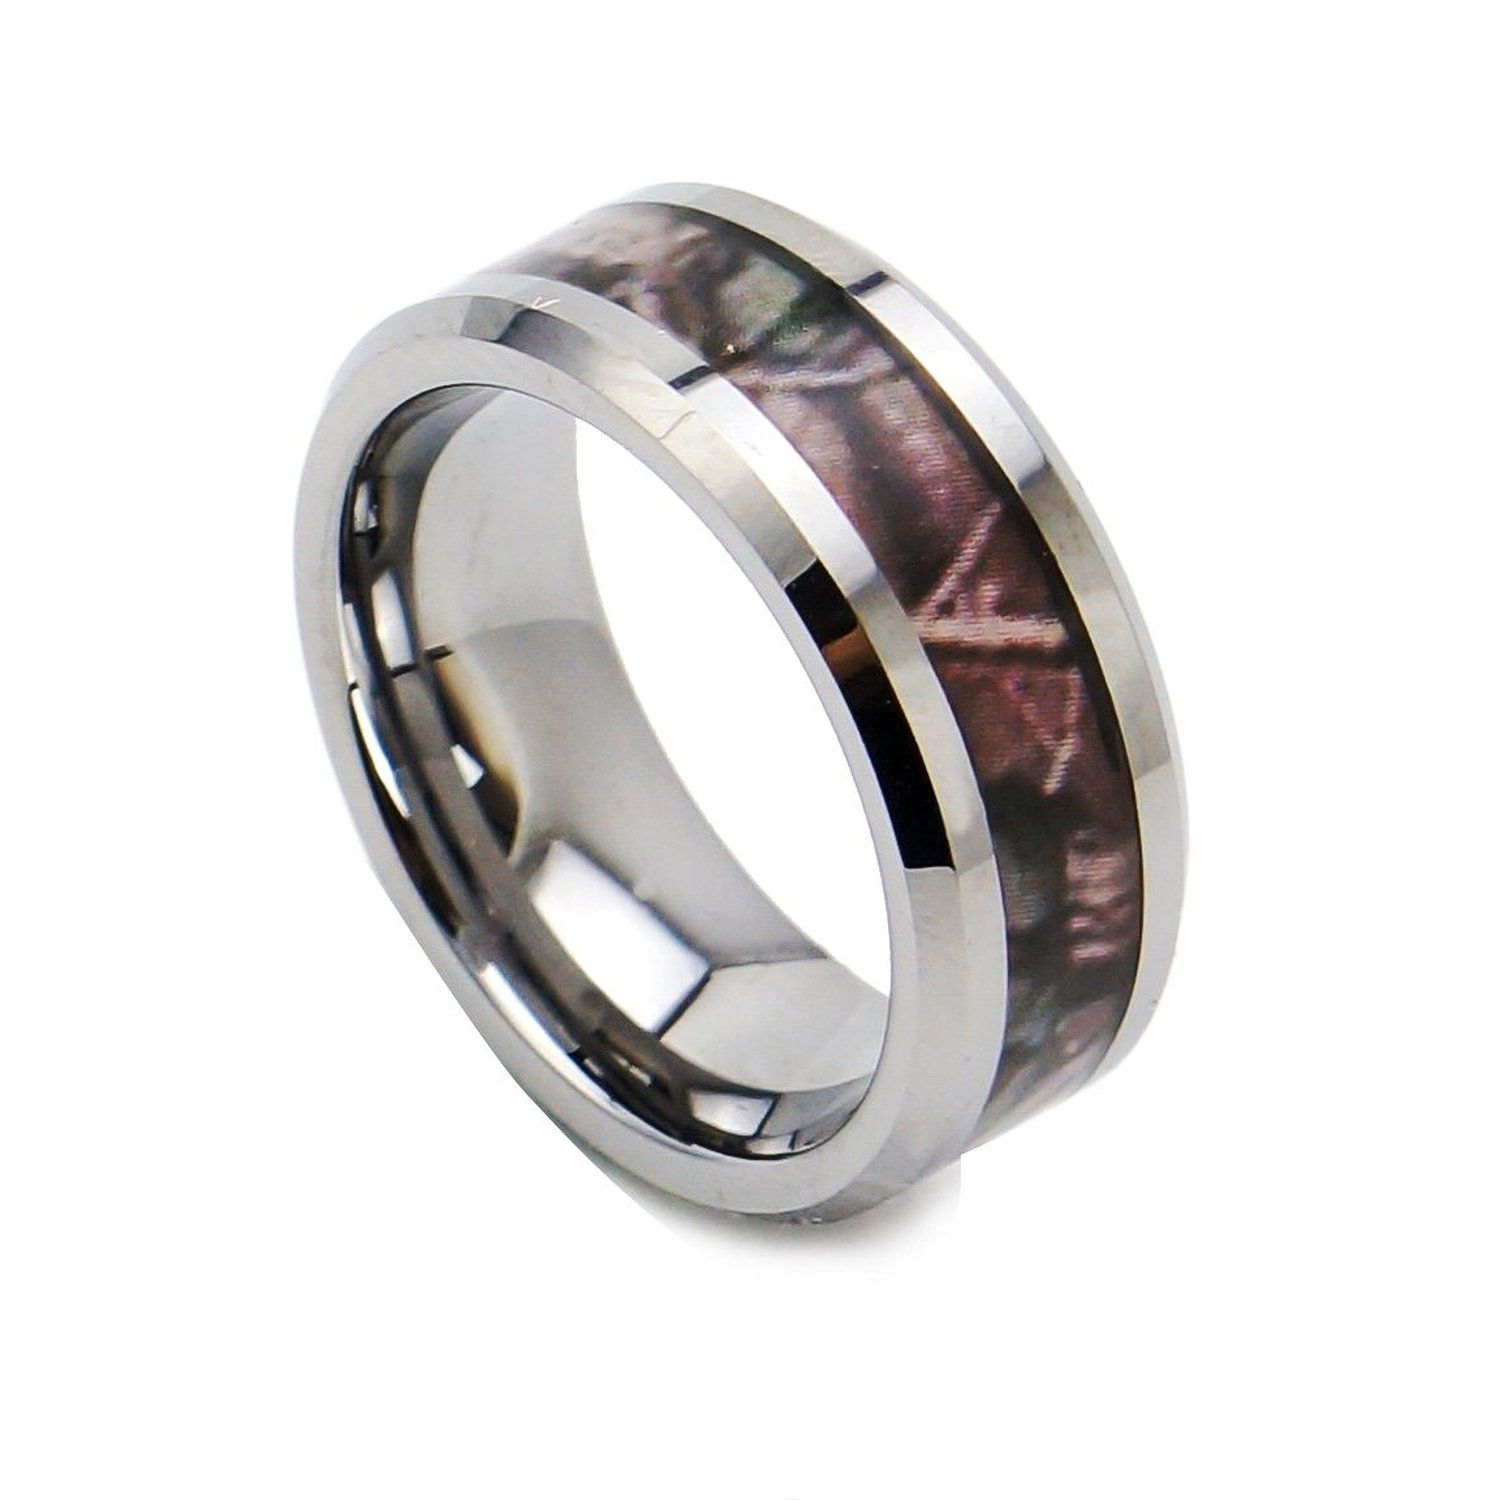 king will 8mm camouflage tungsten ring black camo hunting outdoor